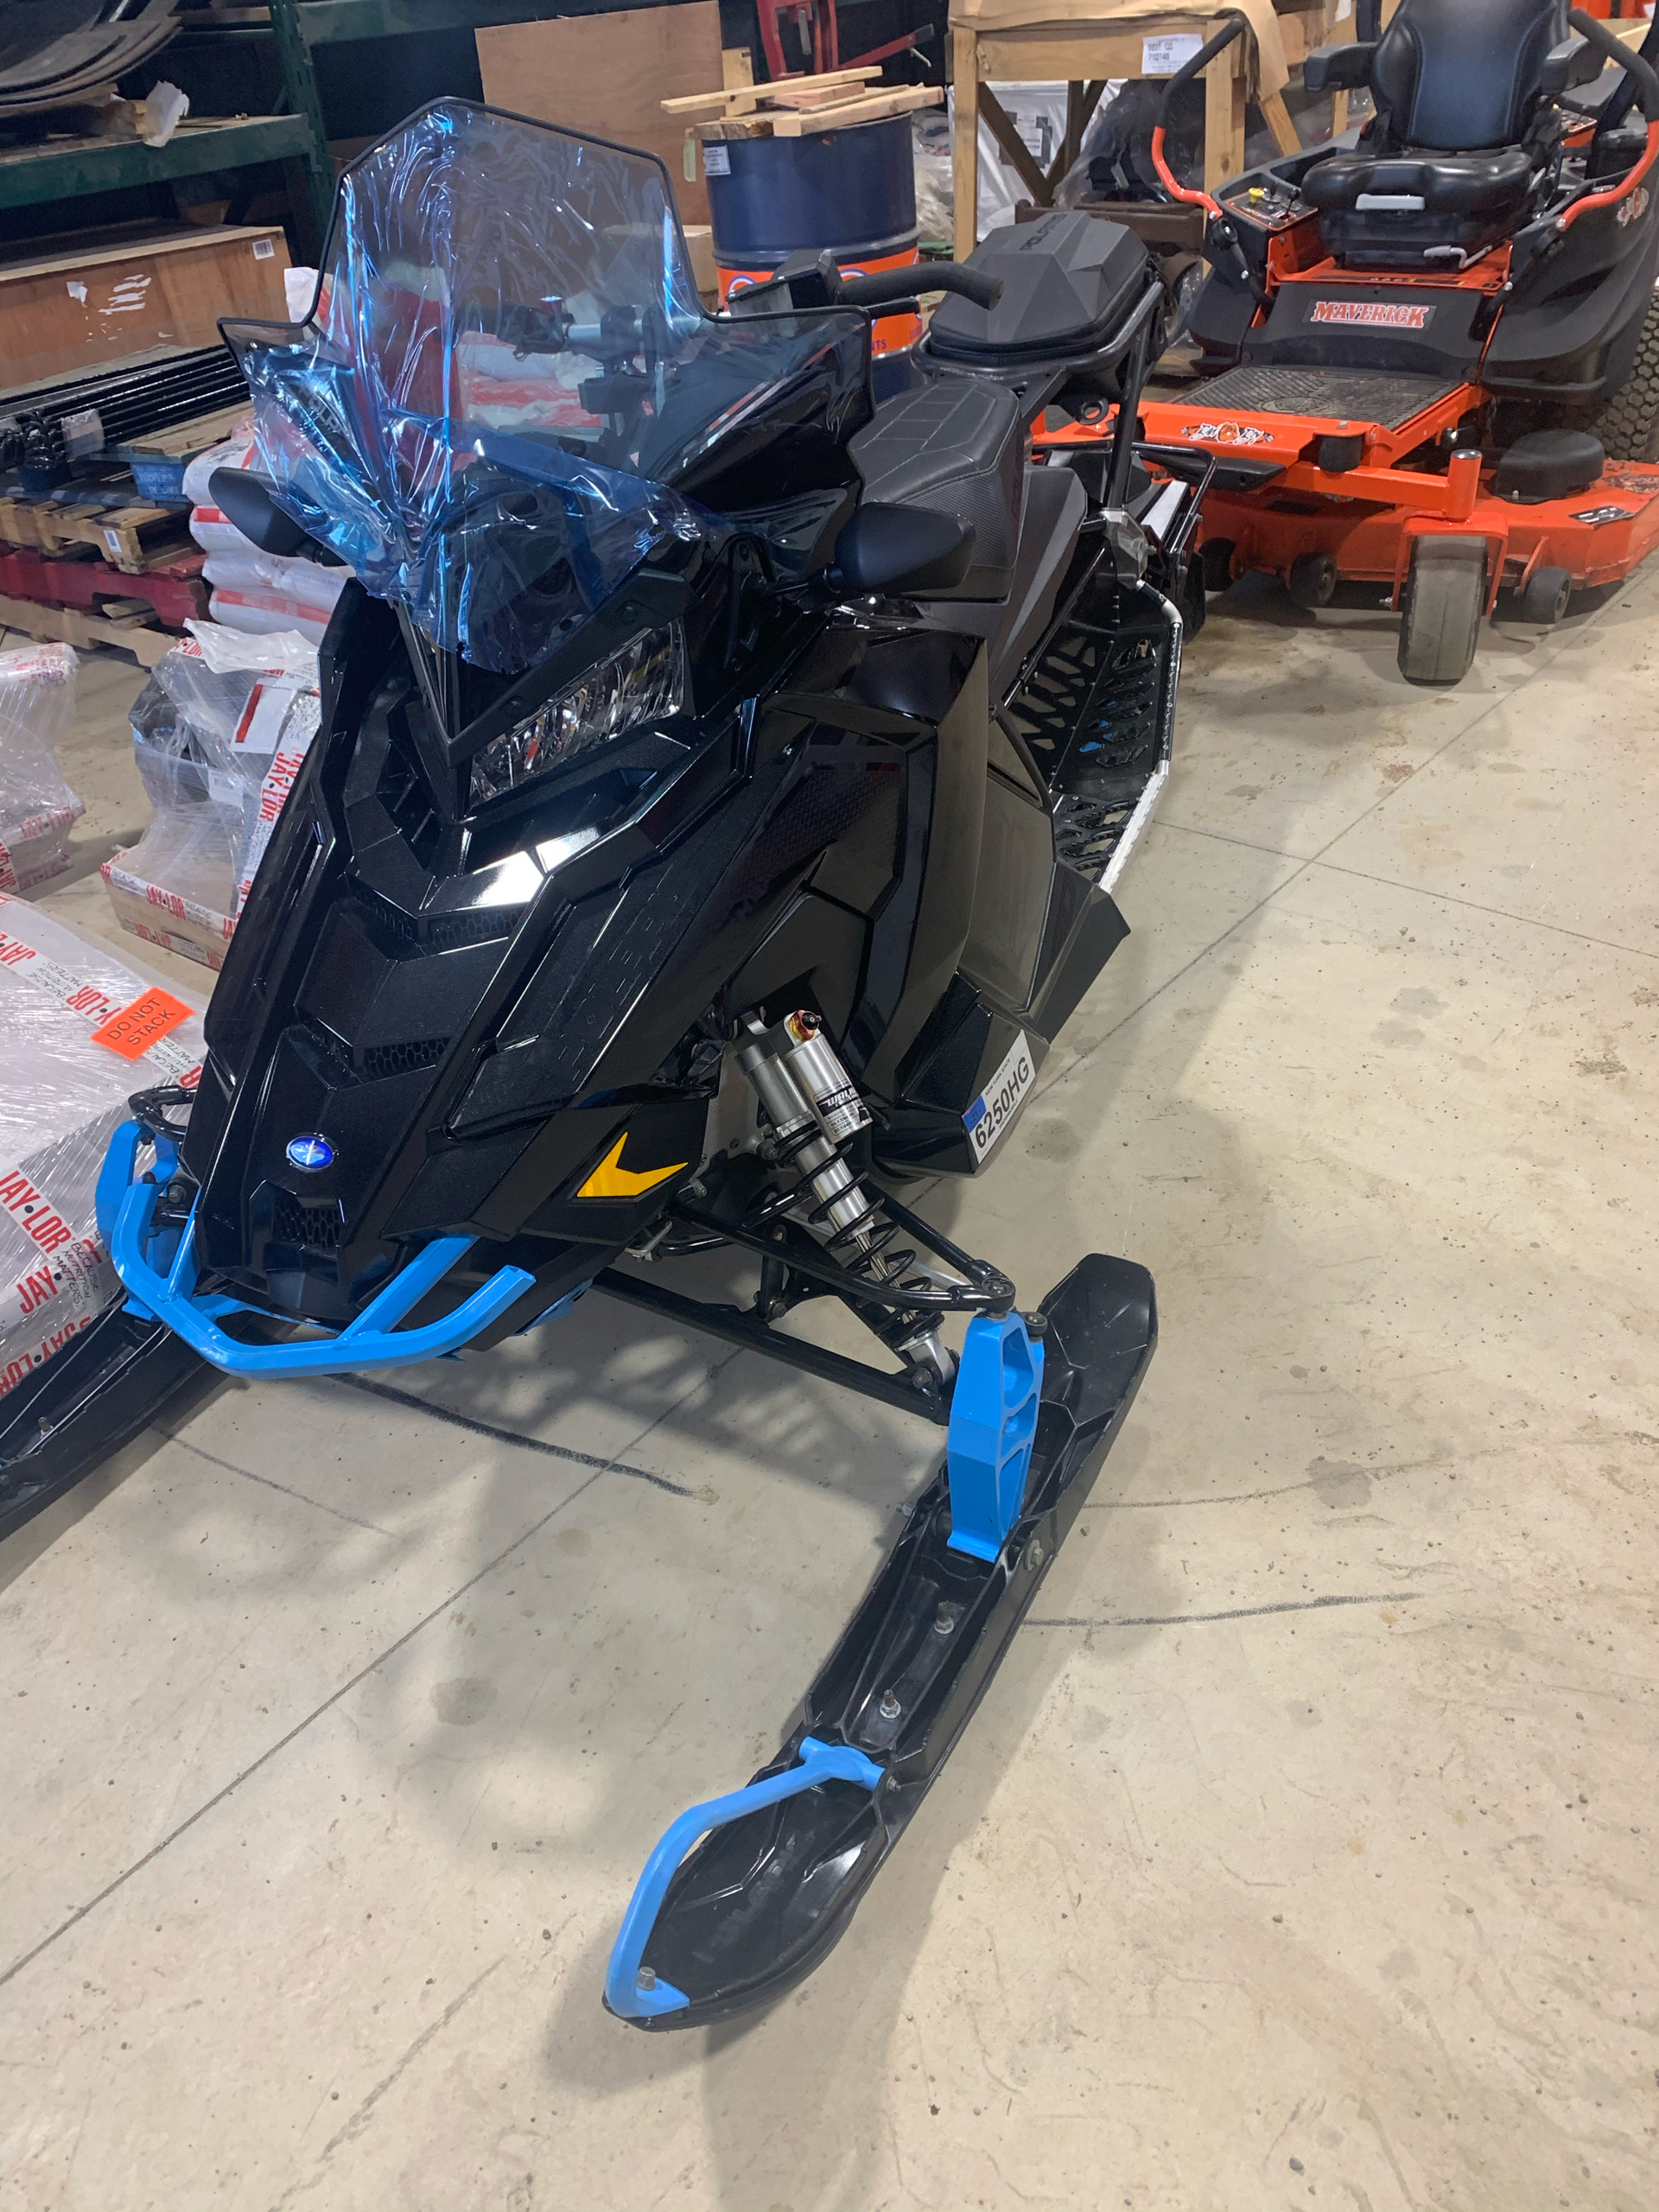 2019 Polaris 850 Switchback Pro-S SnowCheck Select in Cherry Creek, New York - Photo 2